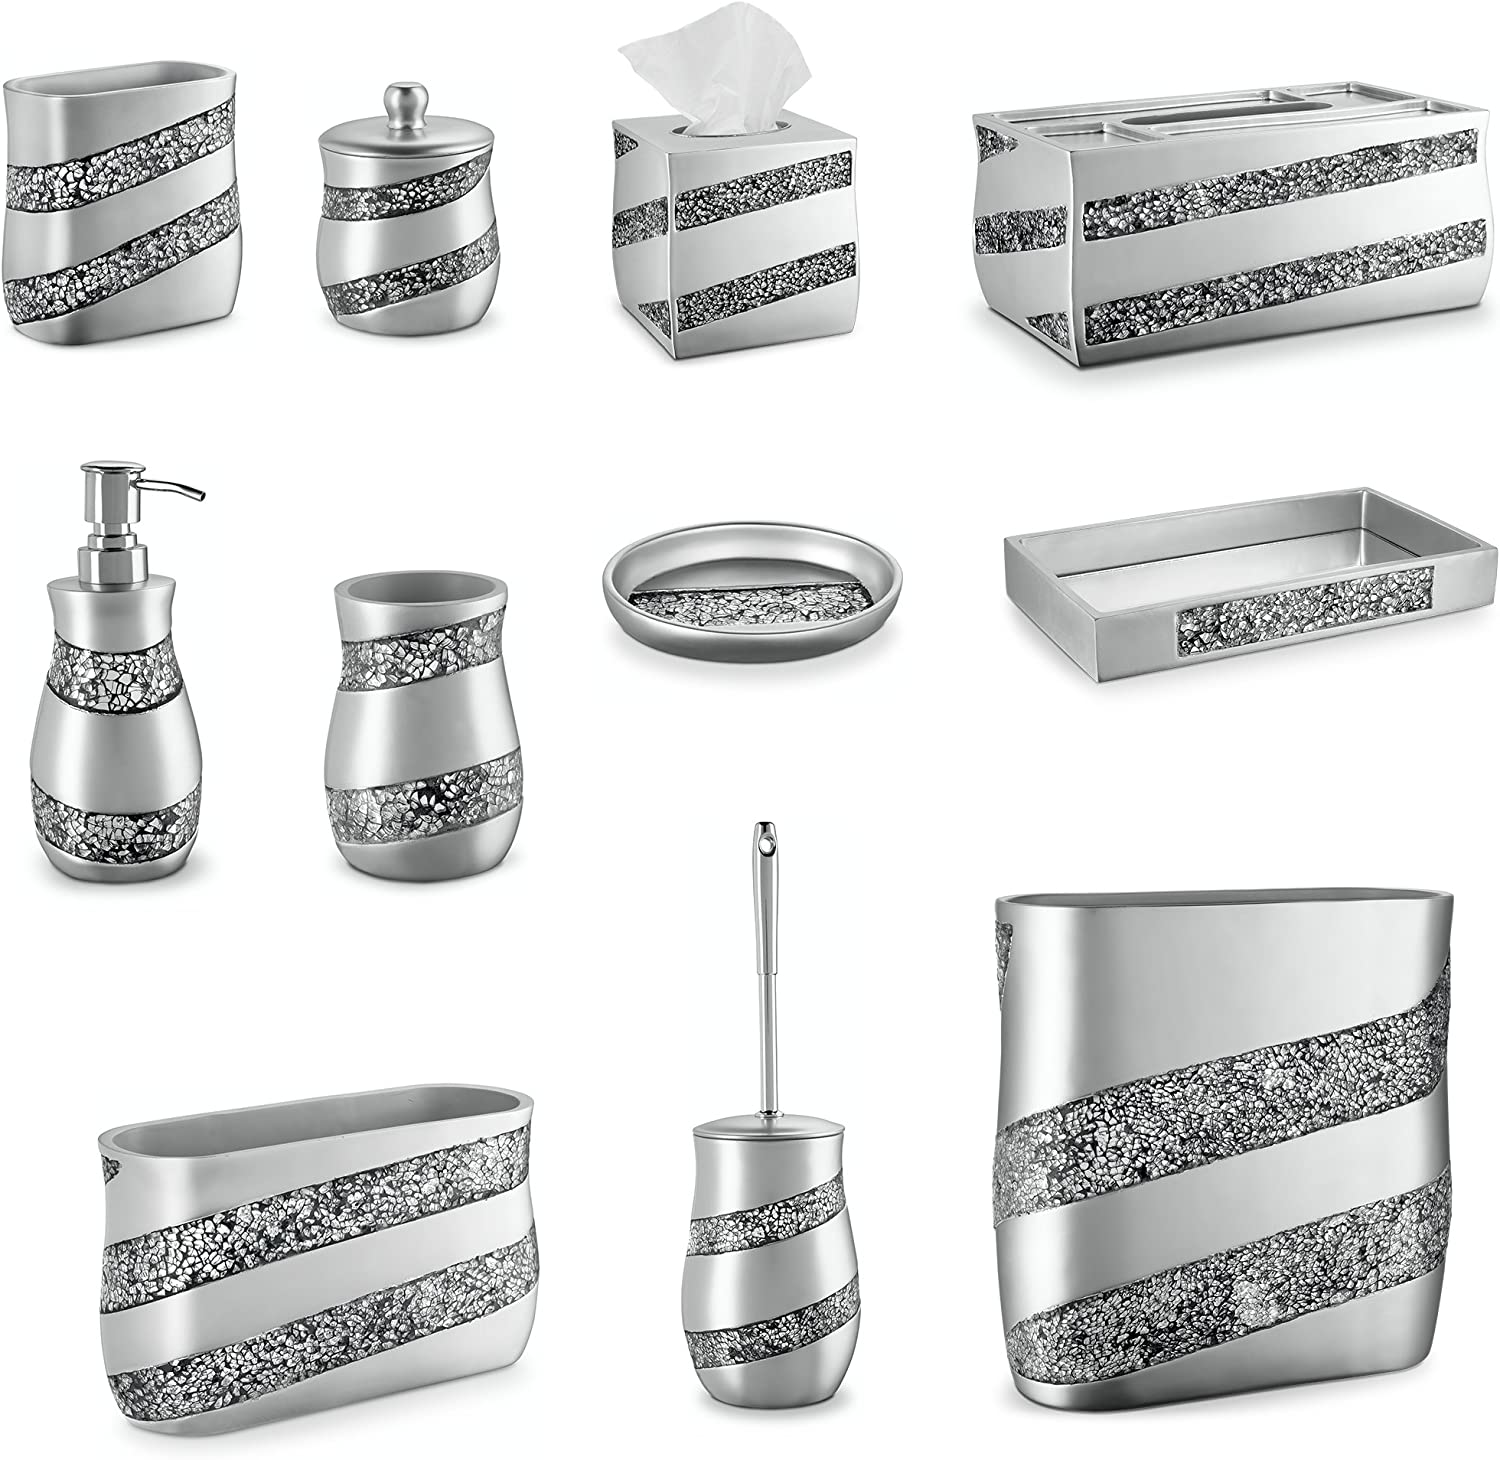 Home Treats Toilet Brush /& Holder Silver Mosaic